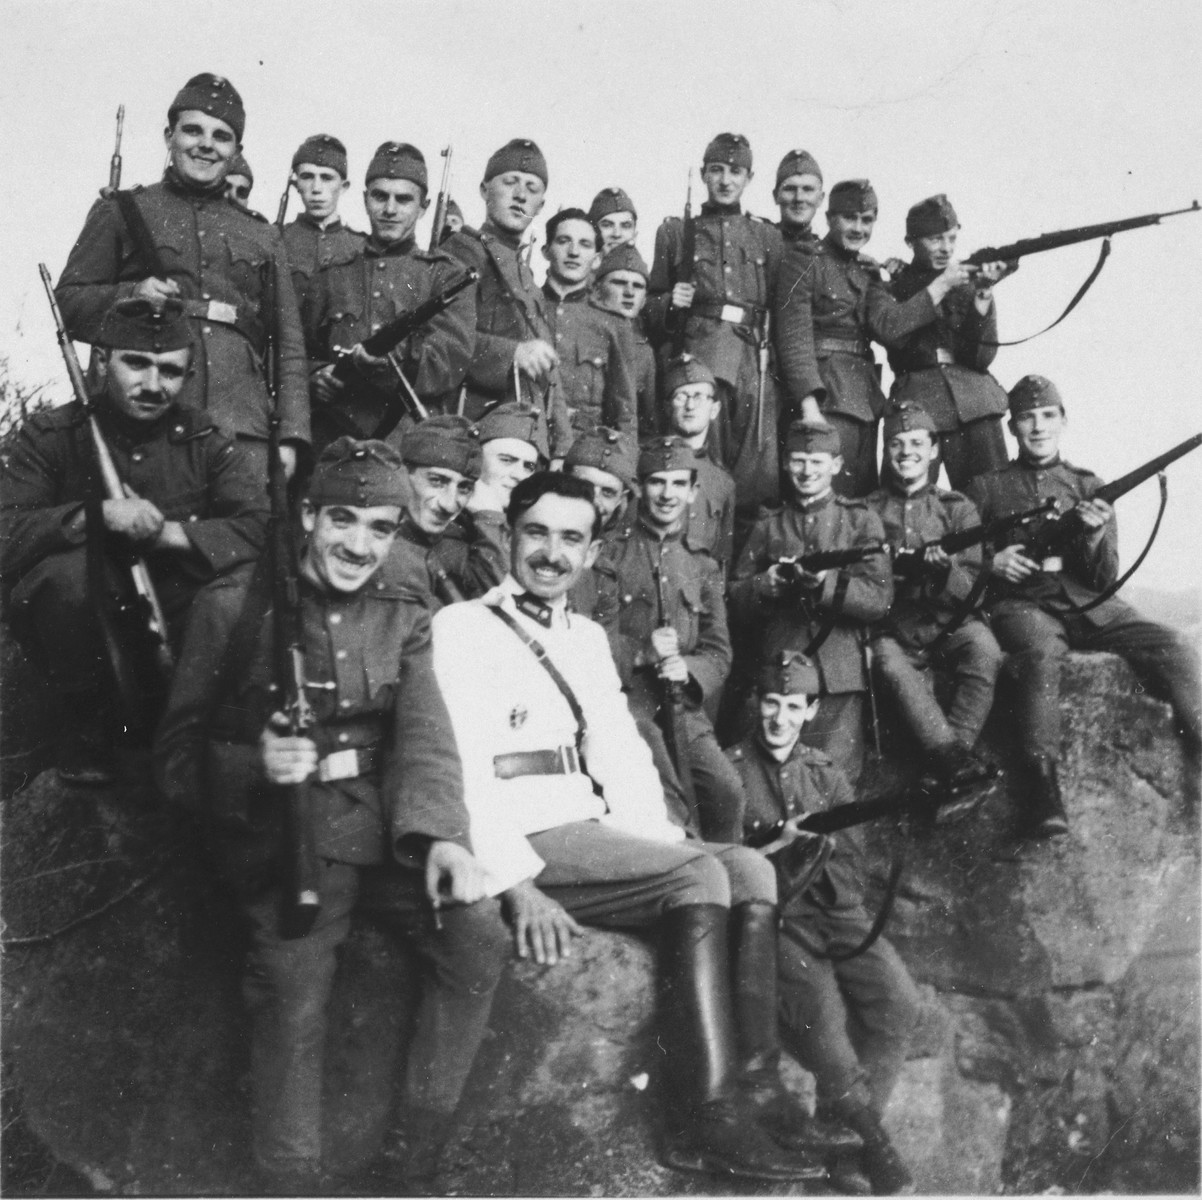 A unit of the Hungarian army with both Jewish and non-Jewish soldiers poses during the first year of the war.